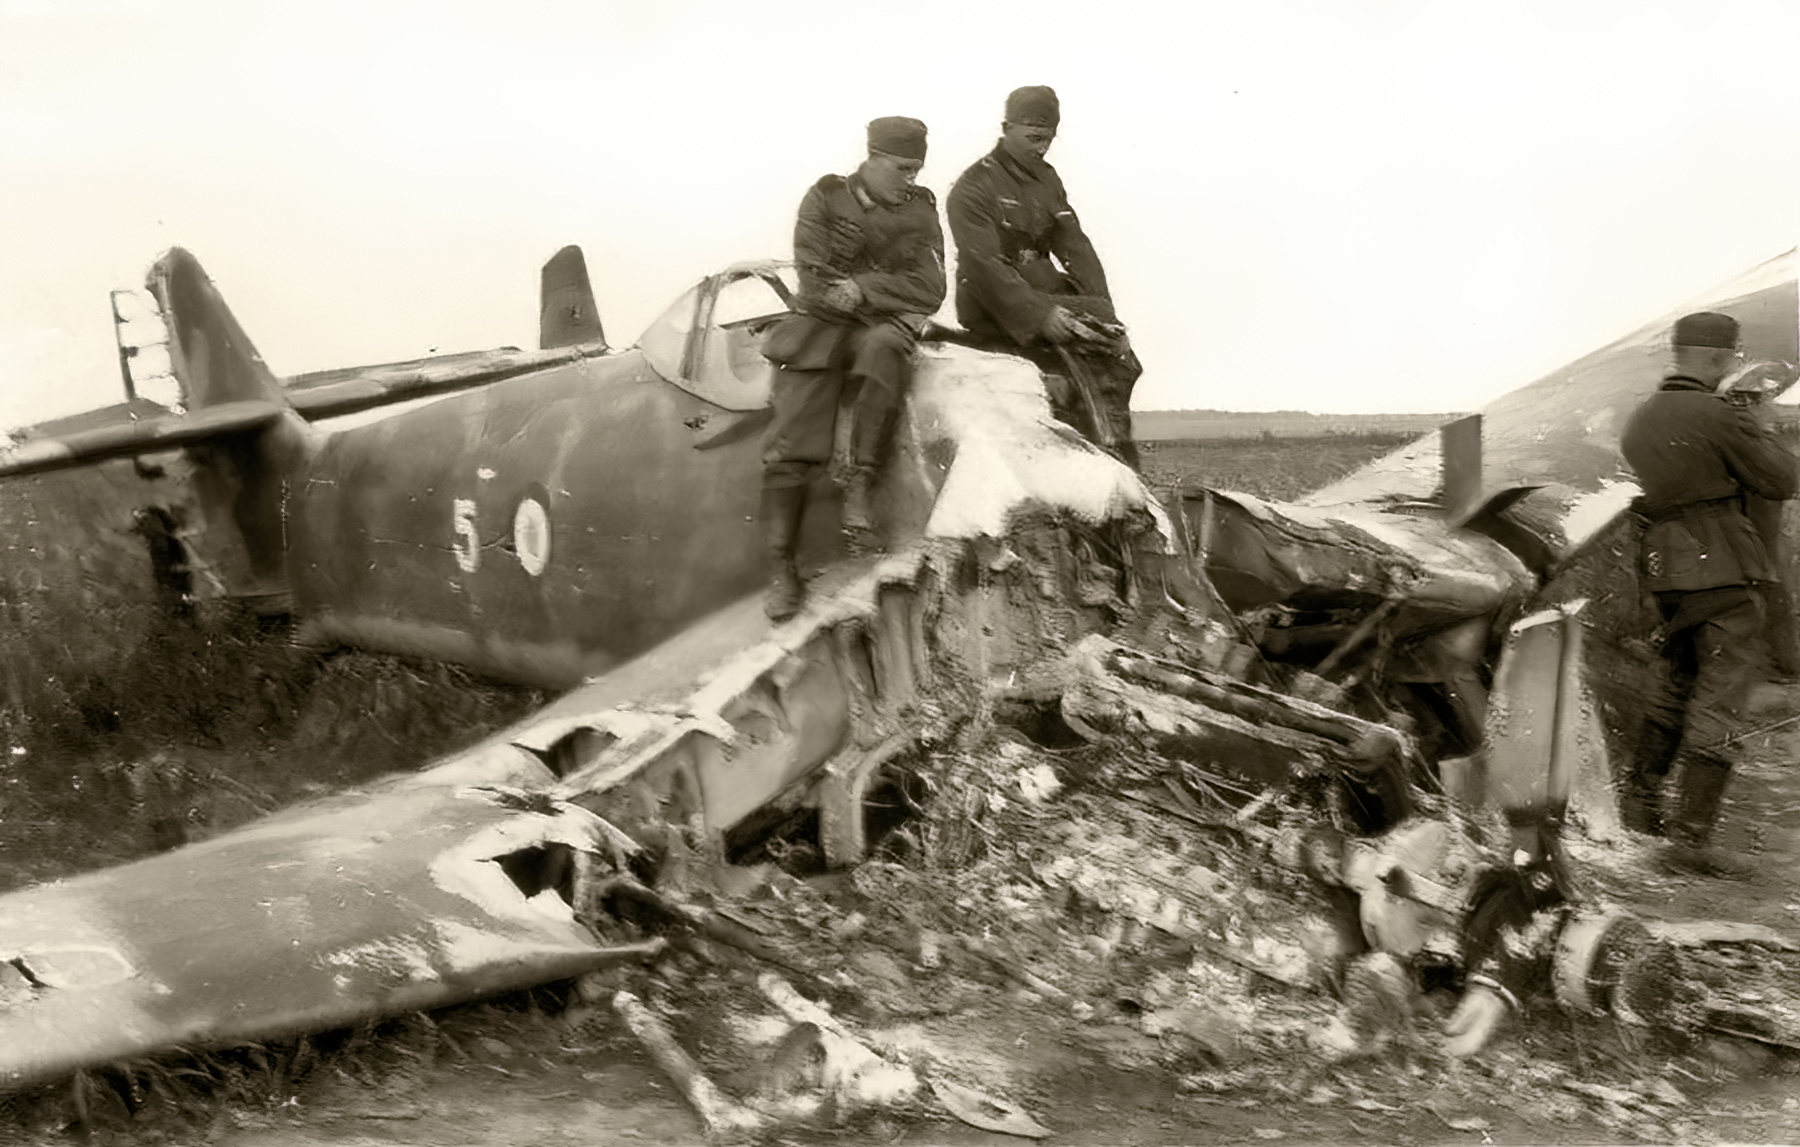 French Airforce Loire Nieuport LN 401 Nr5 destroyed after force landing France 1940 ebay 01